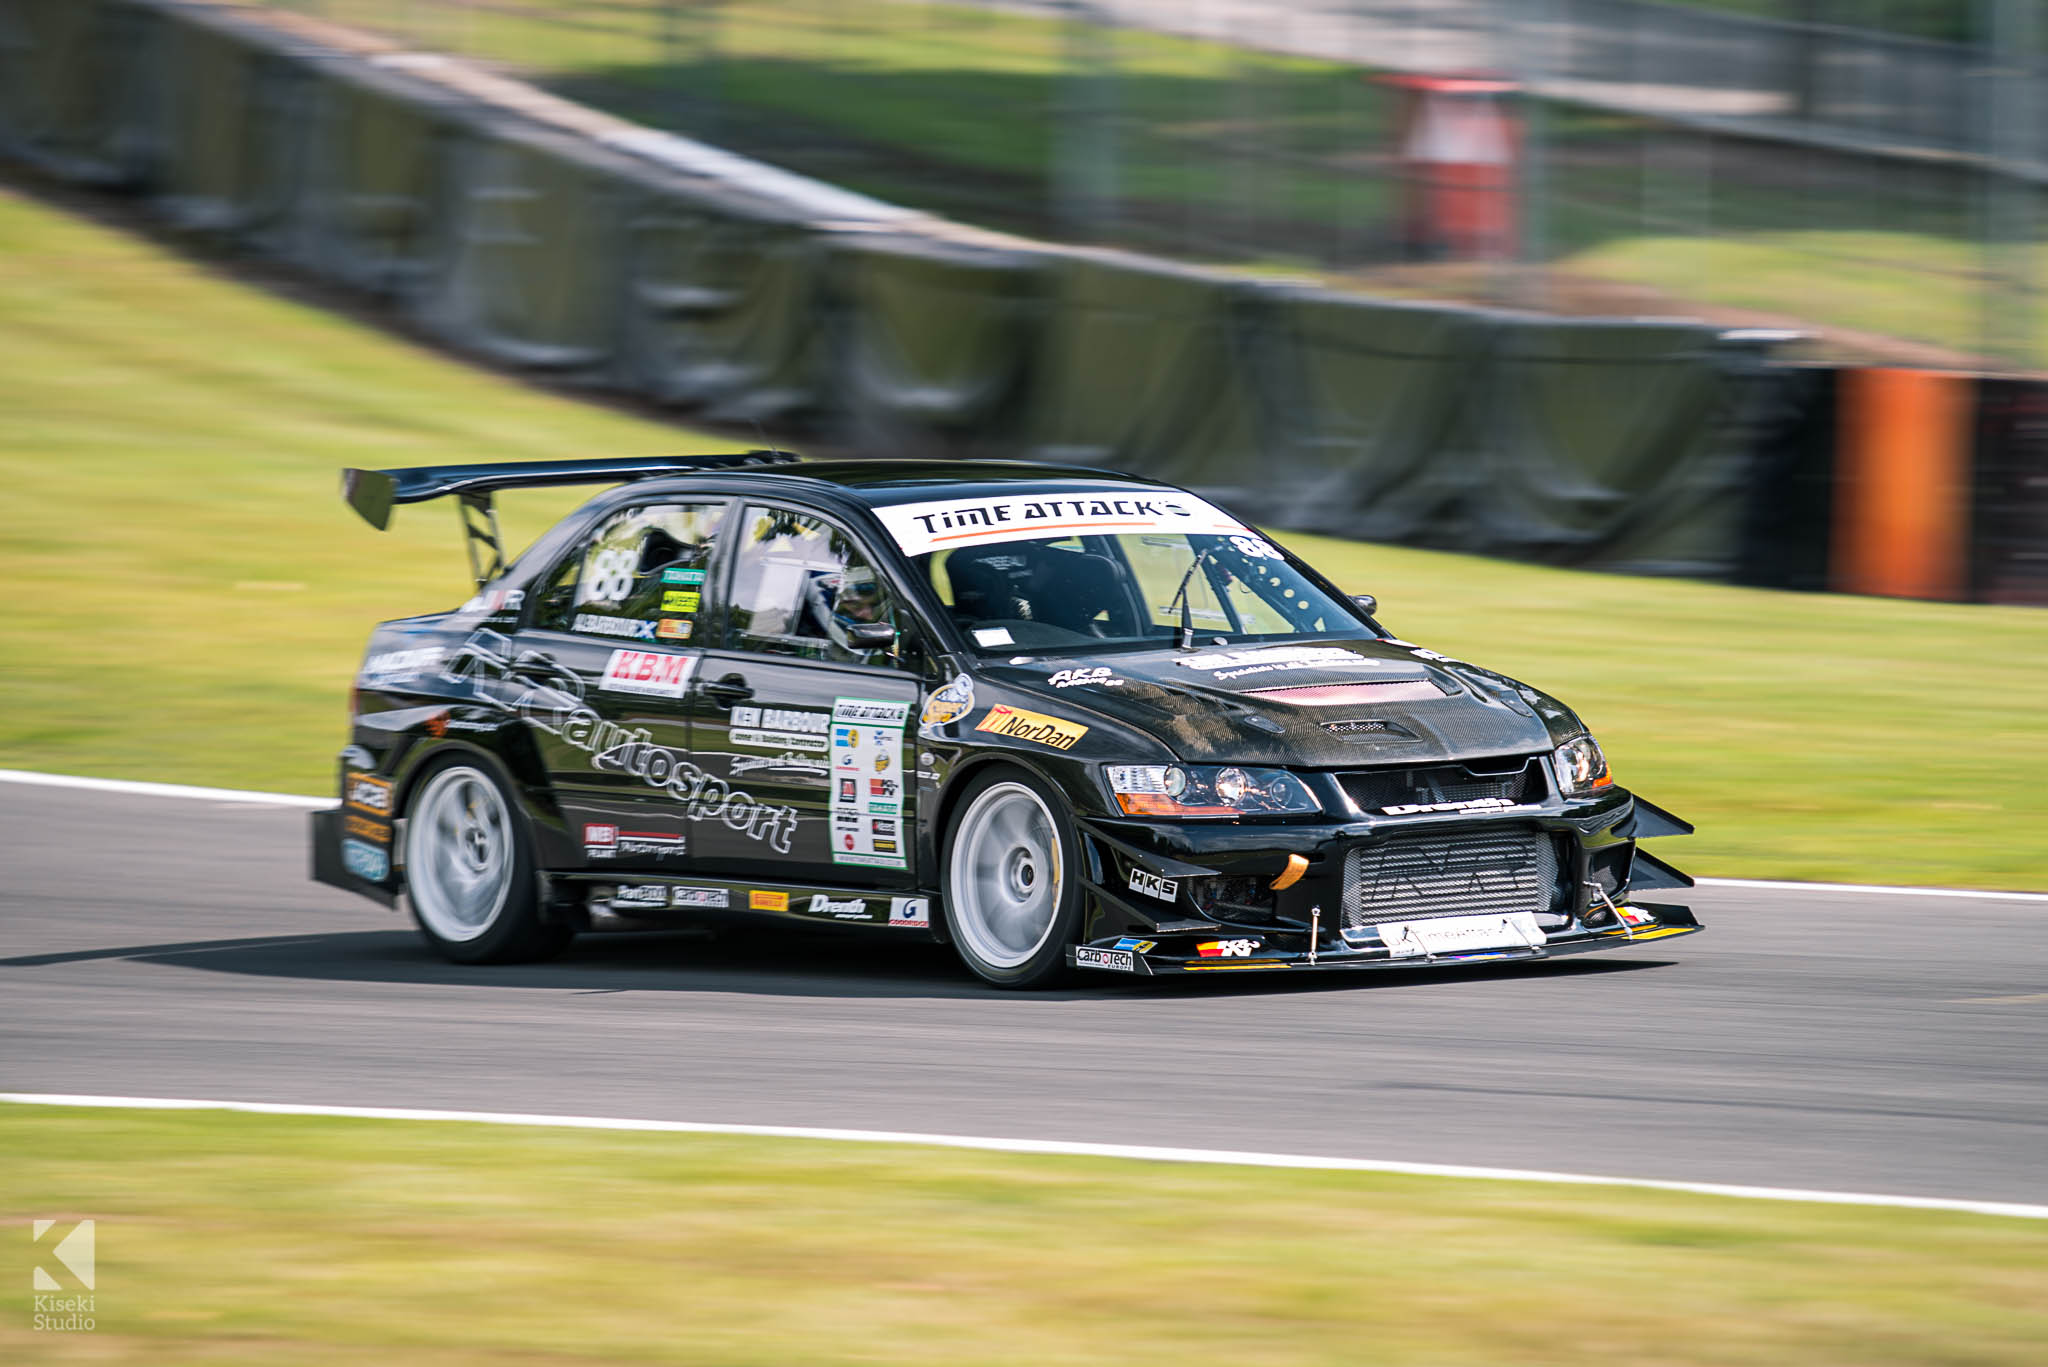 Mitsubishi Lancer Evolution 9 Time Attack